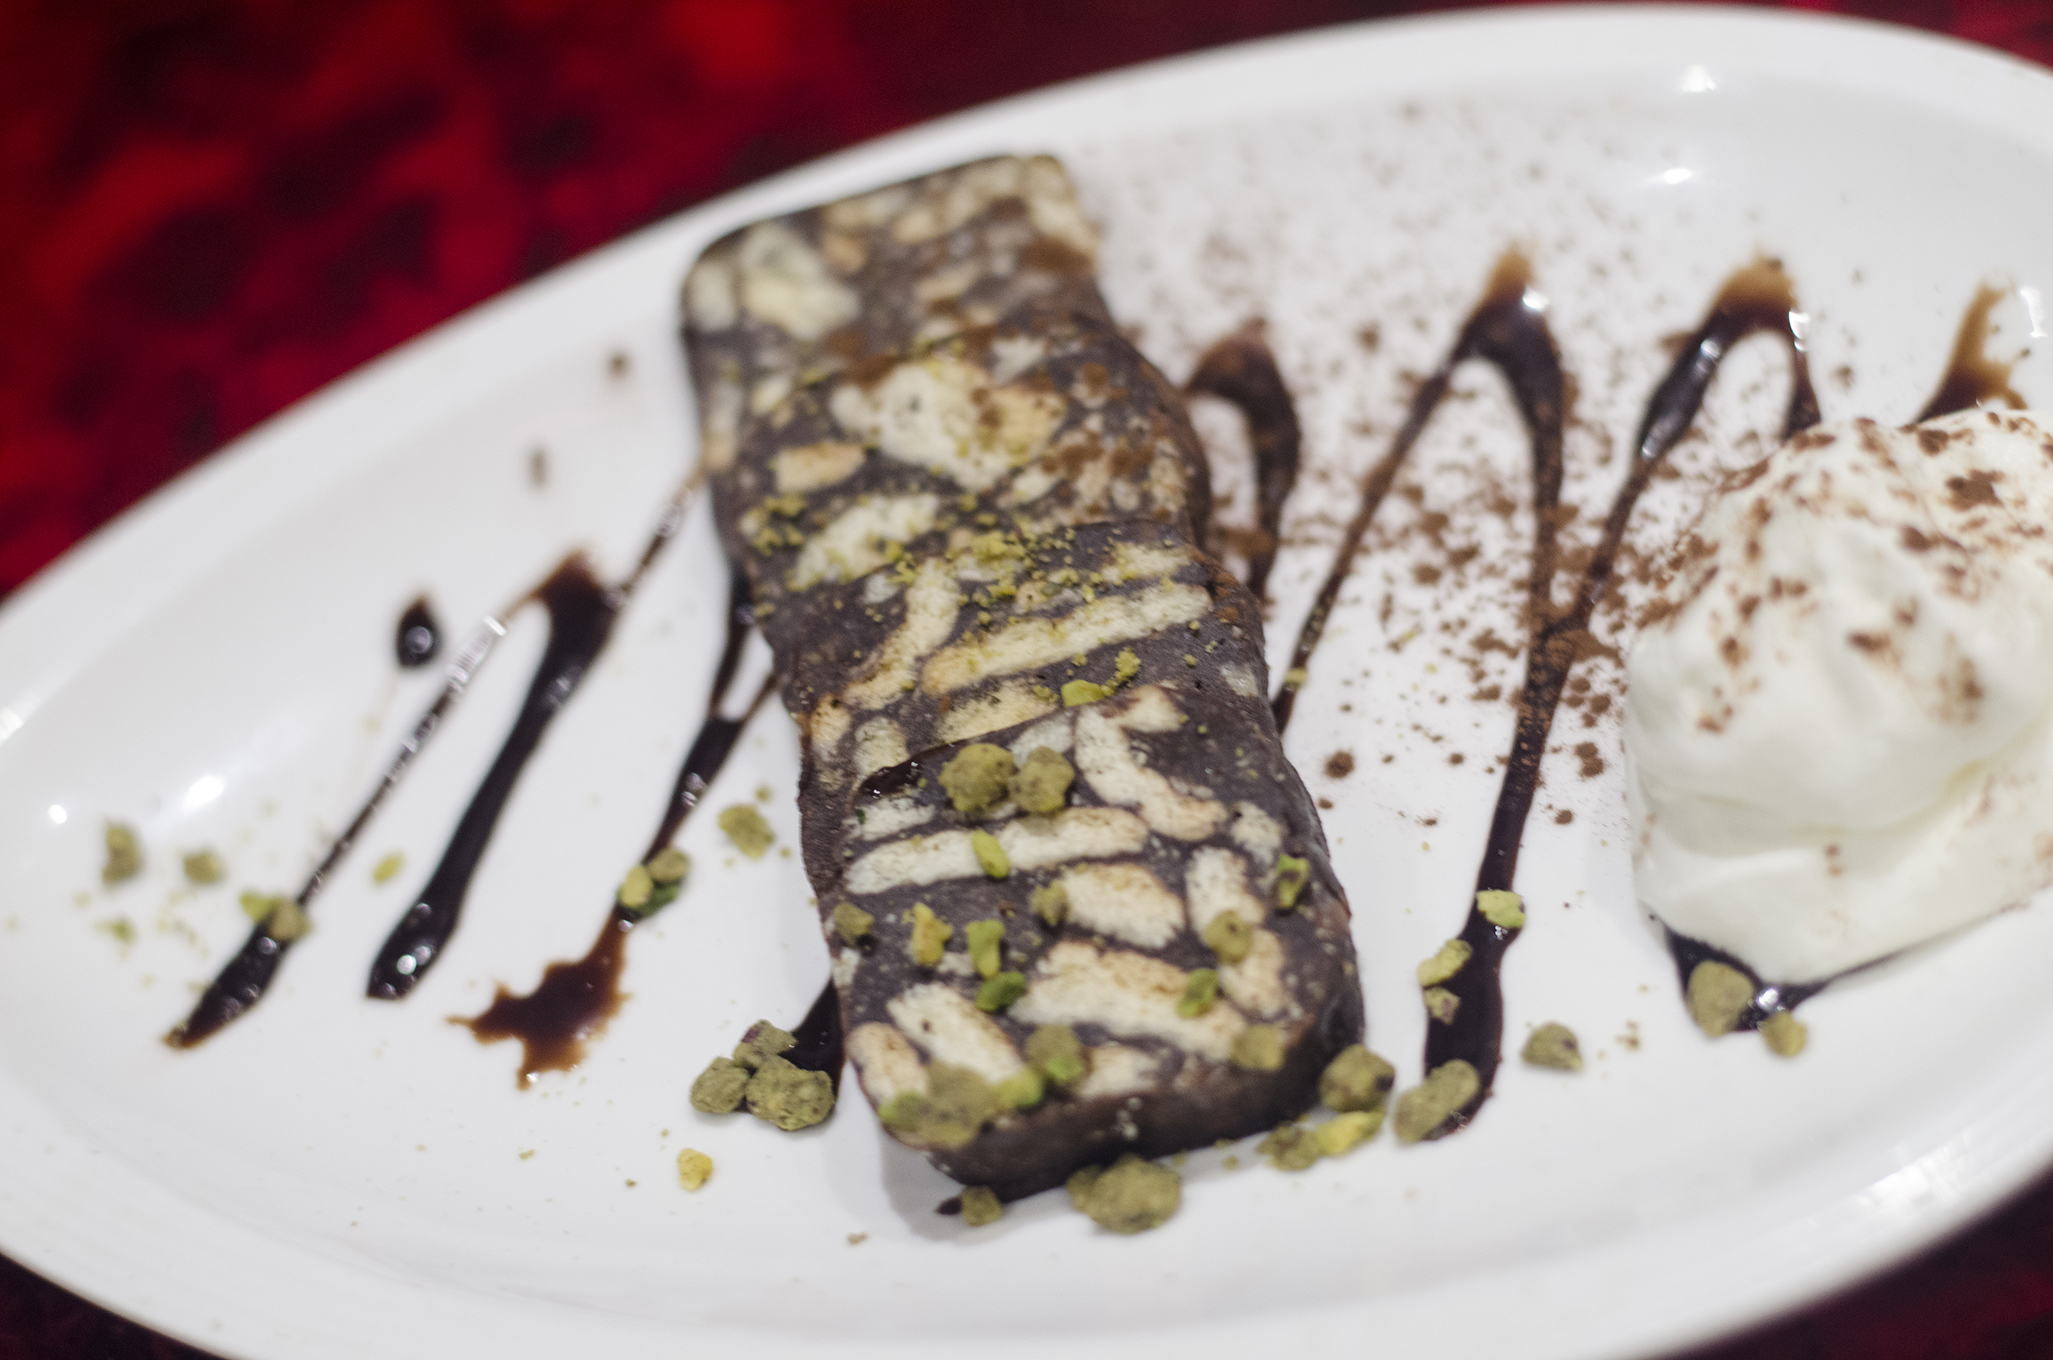 Chocolate Mazaar is the signature dessert of Mazaar in Windsor, Ontario.